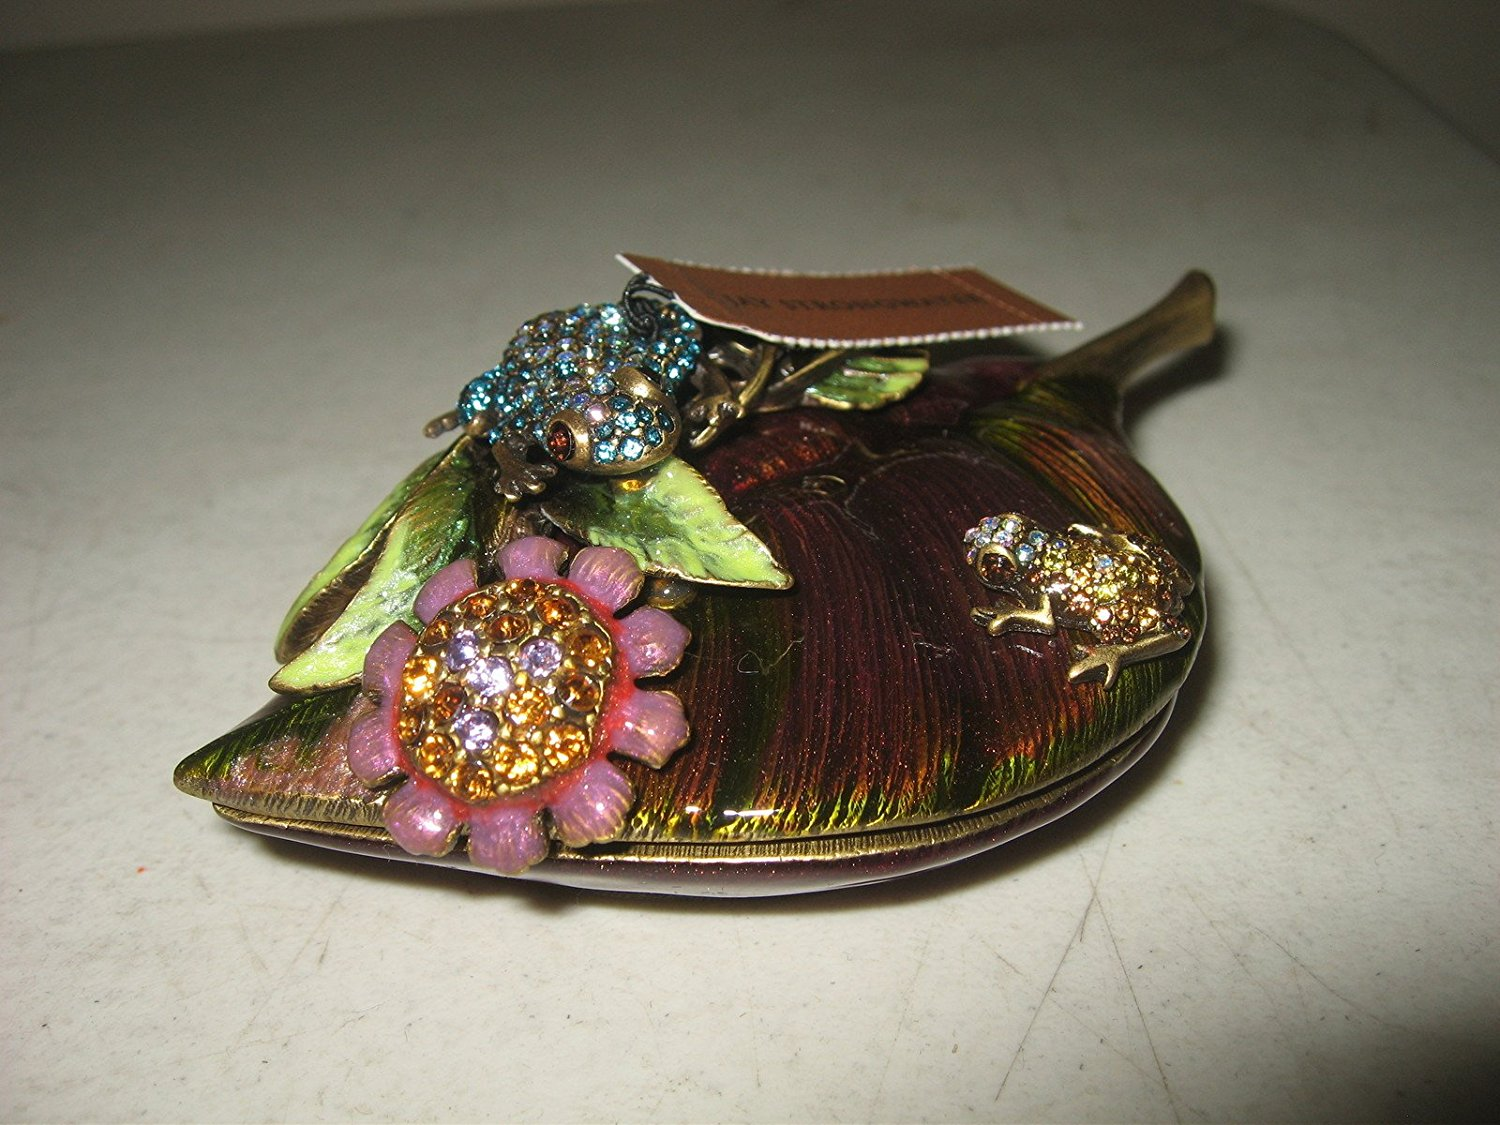 Jay Strongwater Meadow Swarovski Crystals Frogs On Leaf Shaped Box